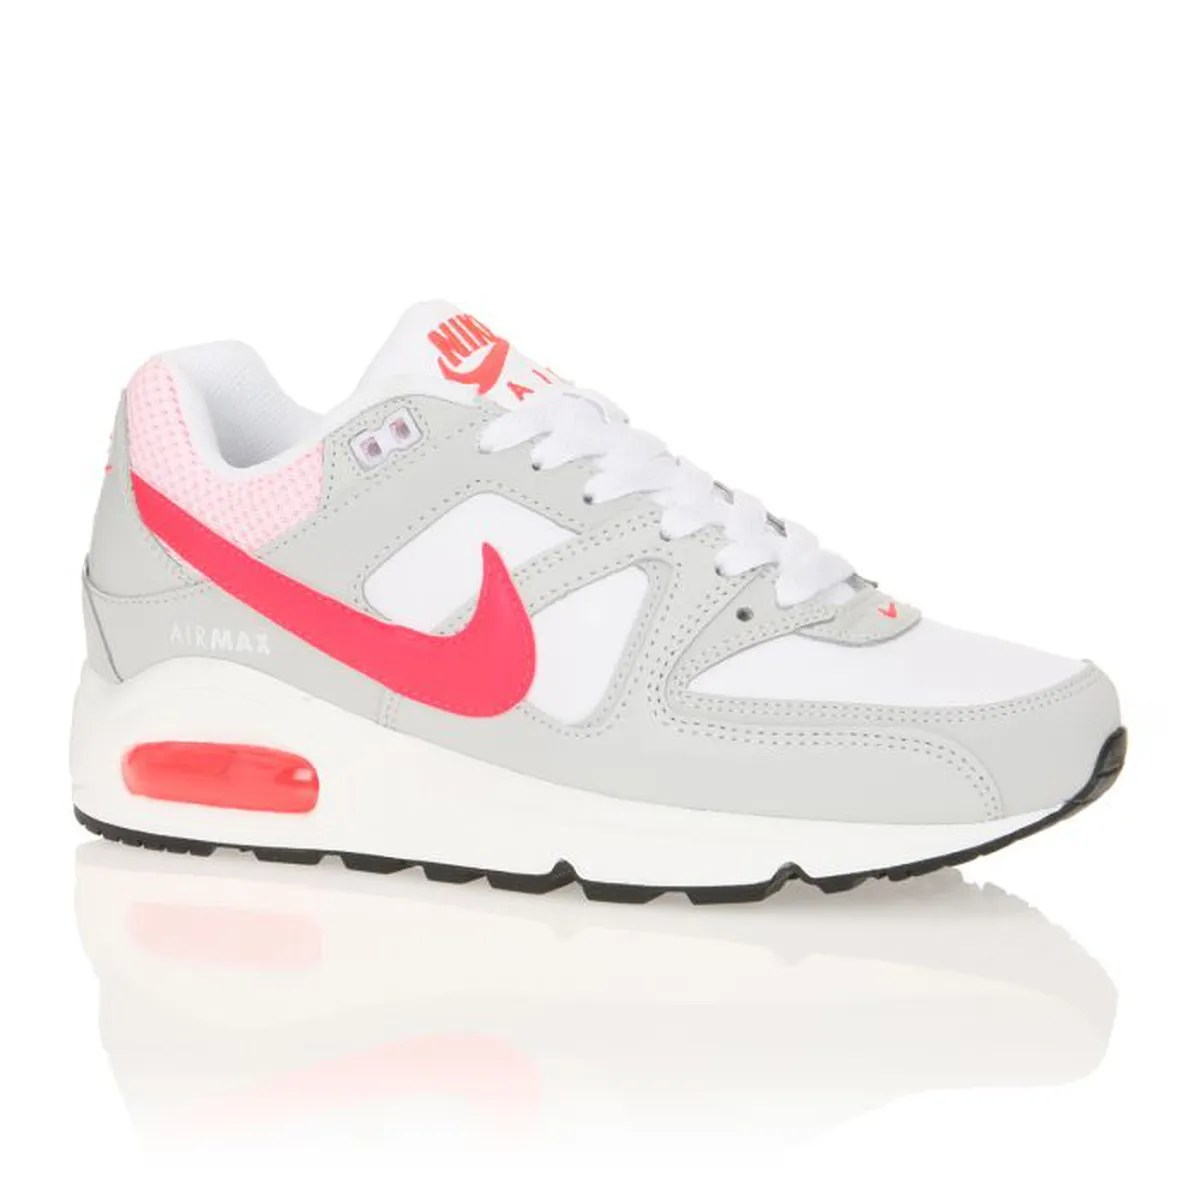 Nike Juvenate Nike Baskets Wmns Air Max Command Femme Femme Gris / Blanc